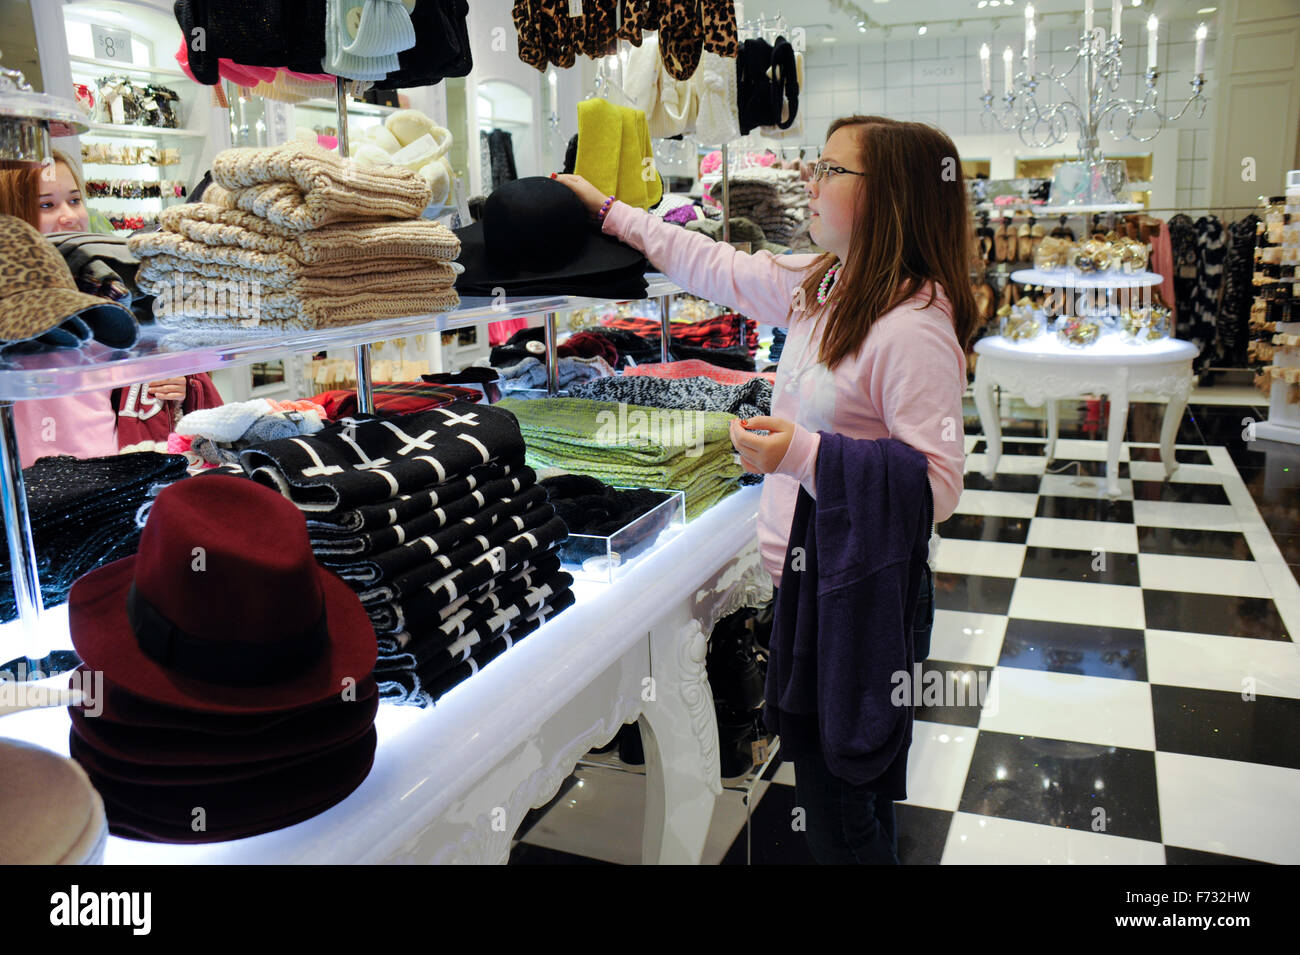 Pre-teens shopping in a mall store - Stock Image